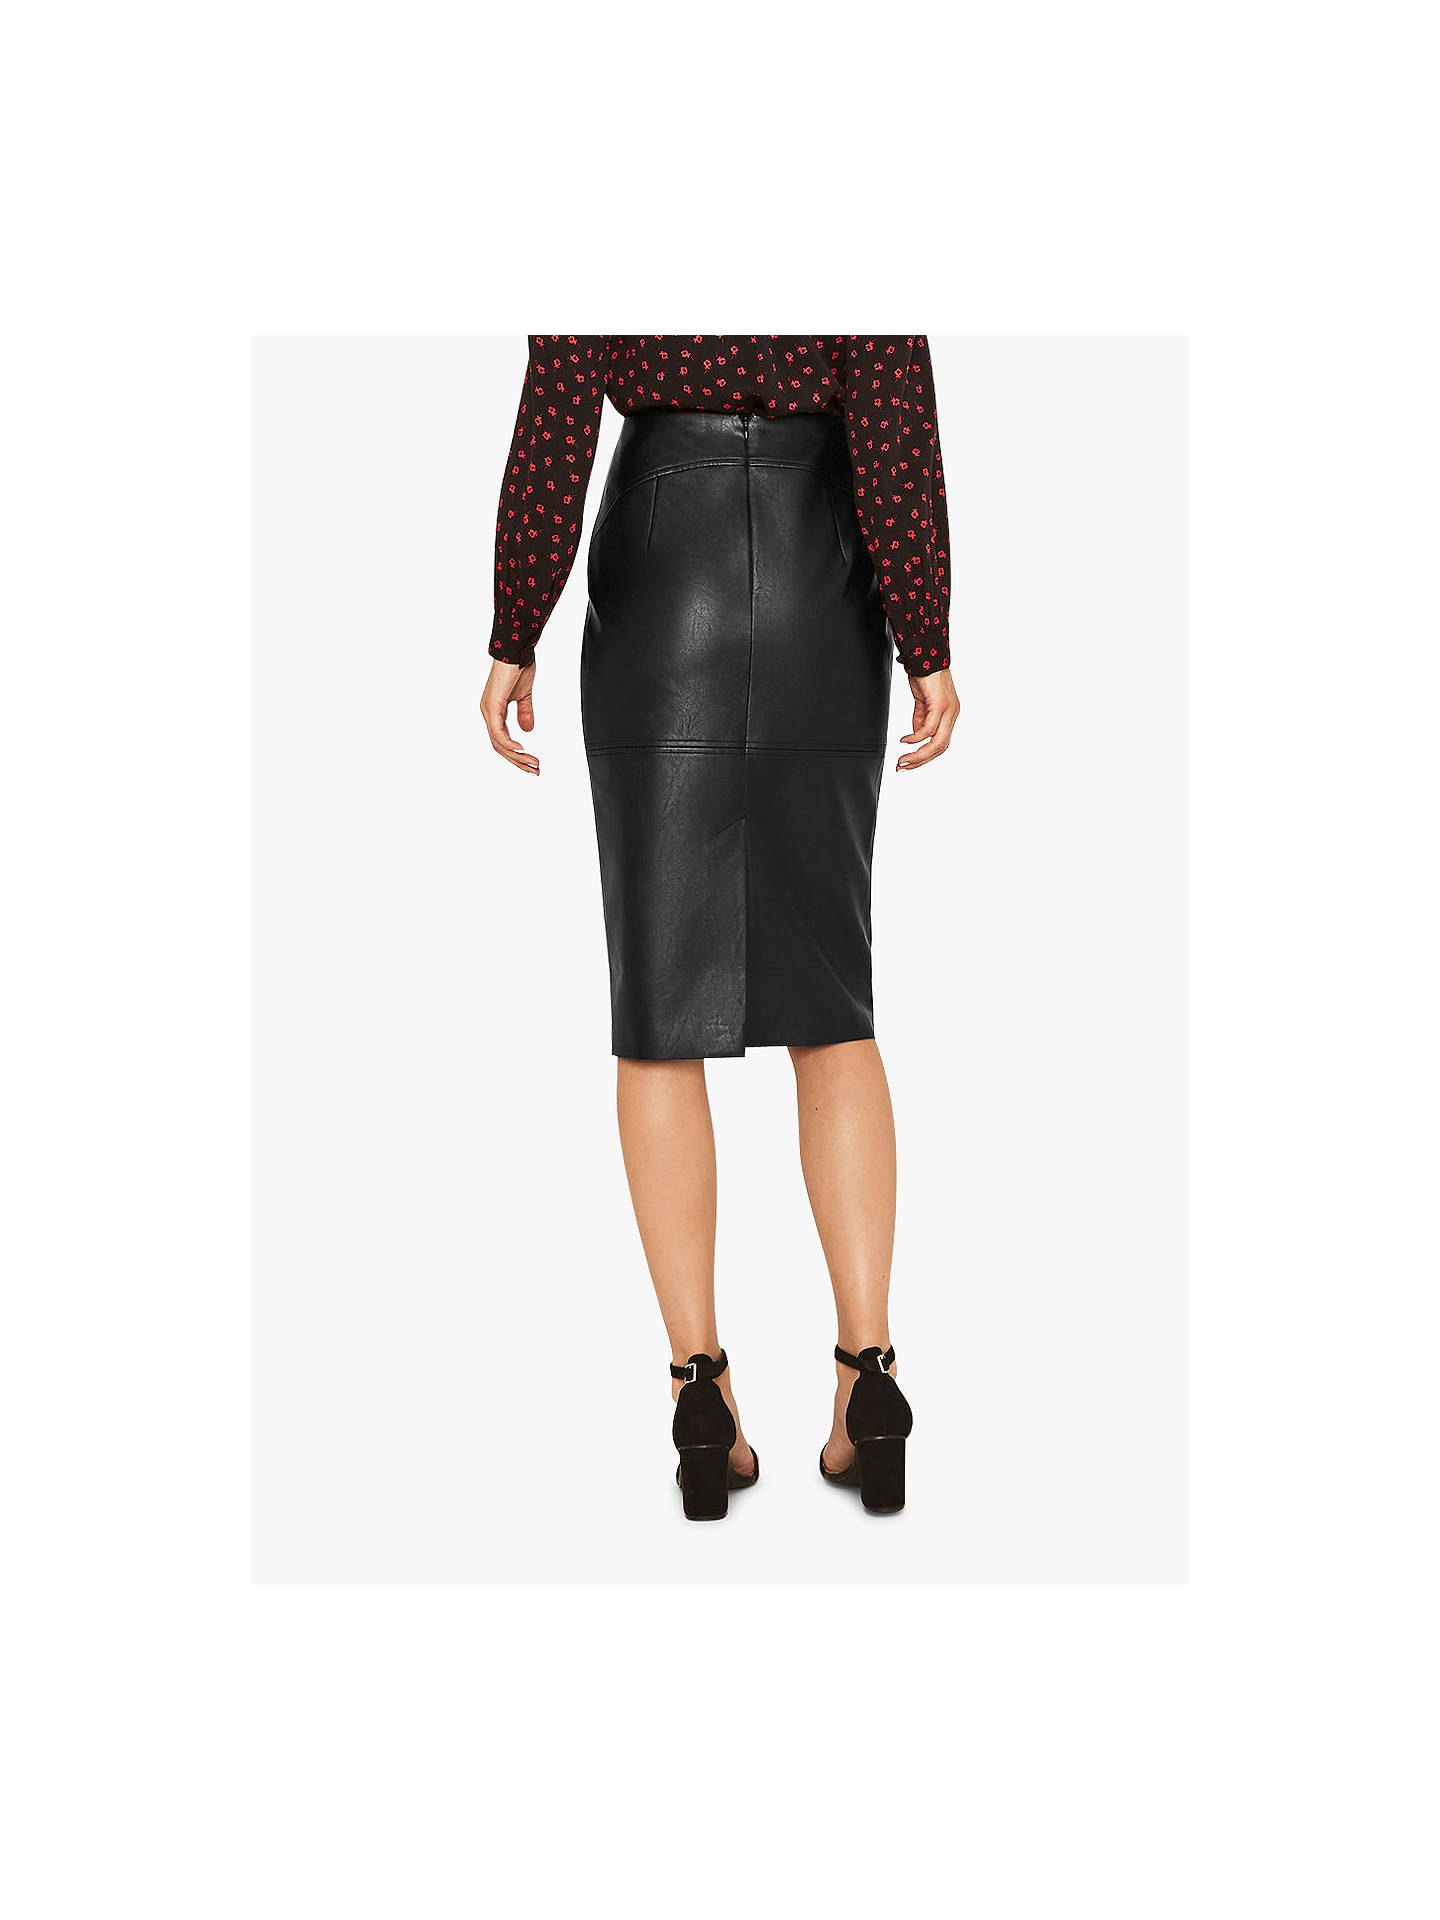 8f3ae5ba27 ... Buy Oasis Faux Leather Skirt, Black, 6 Online at johnlewis.com ...